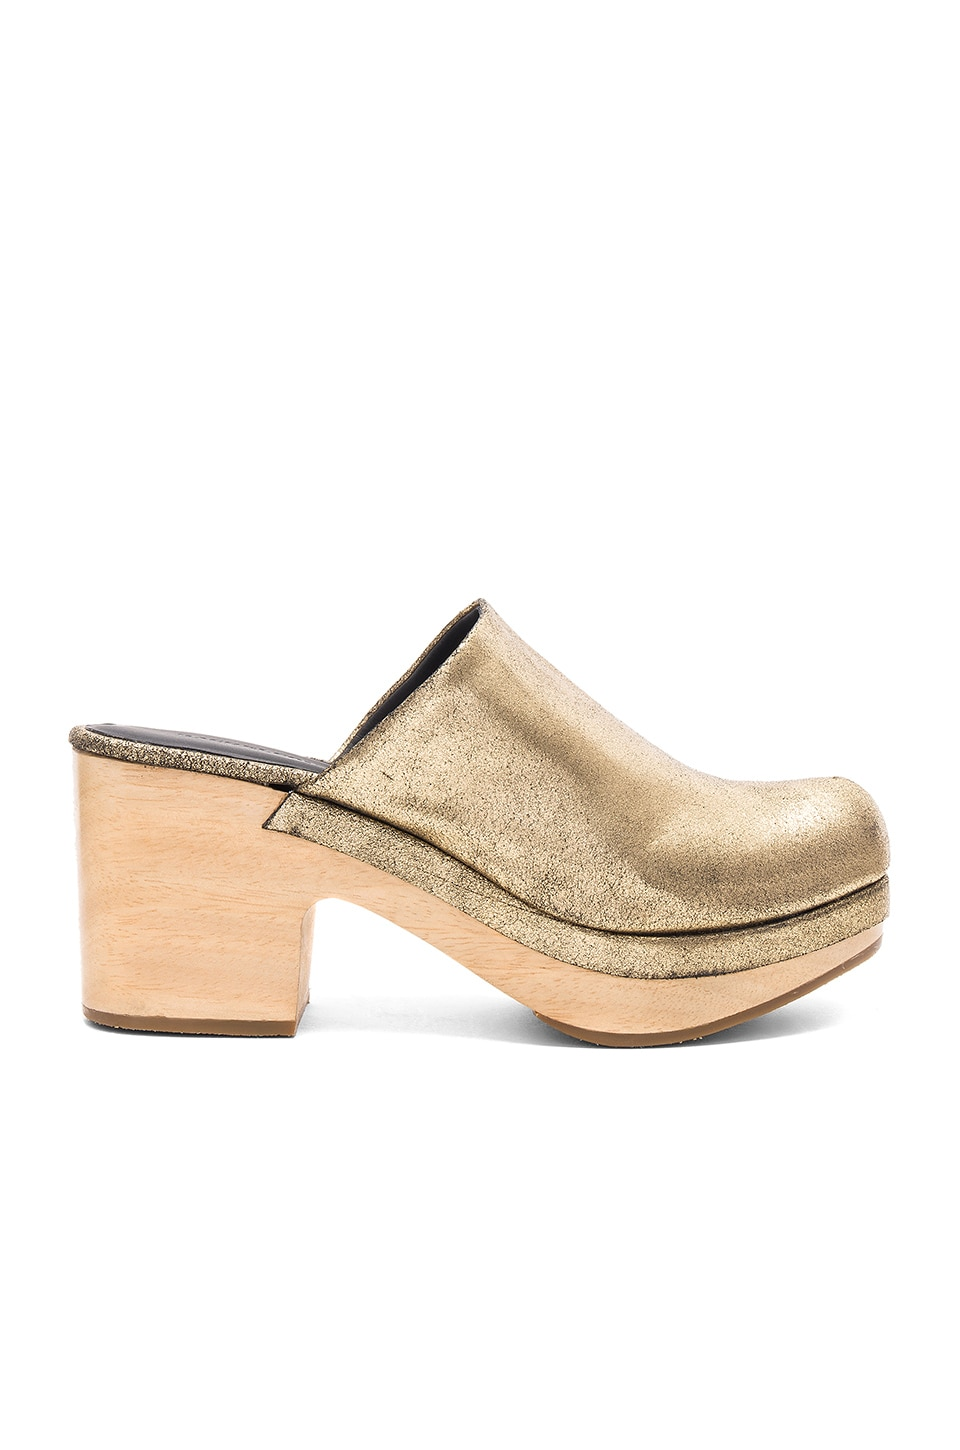 Bose Mules by Rachel Comey